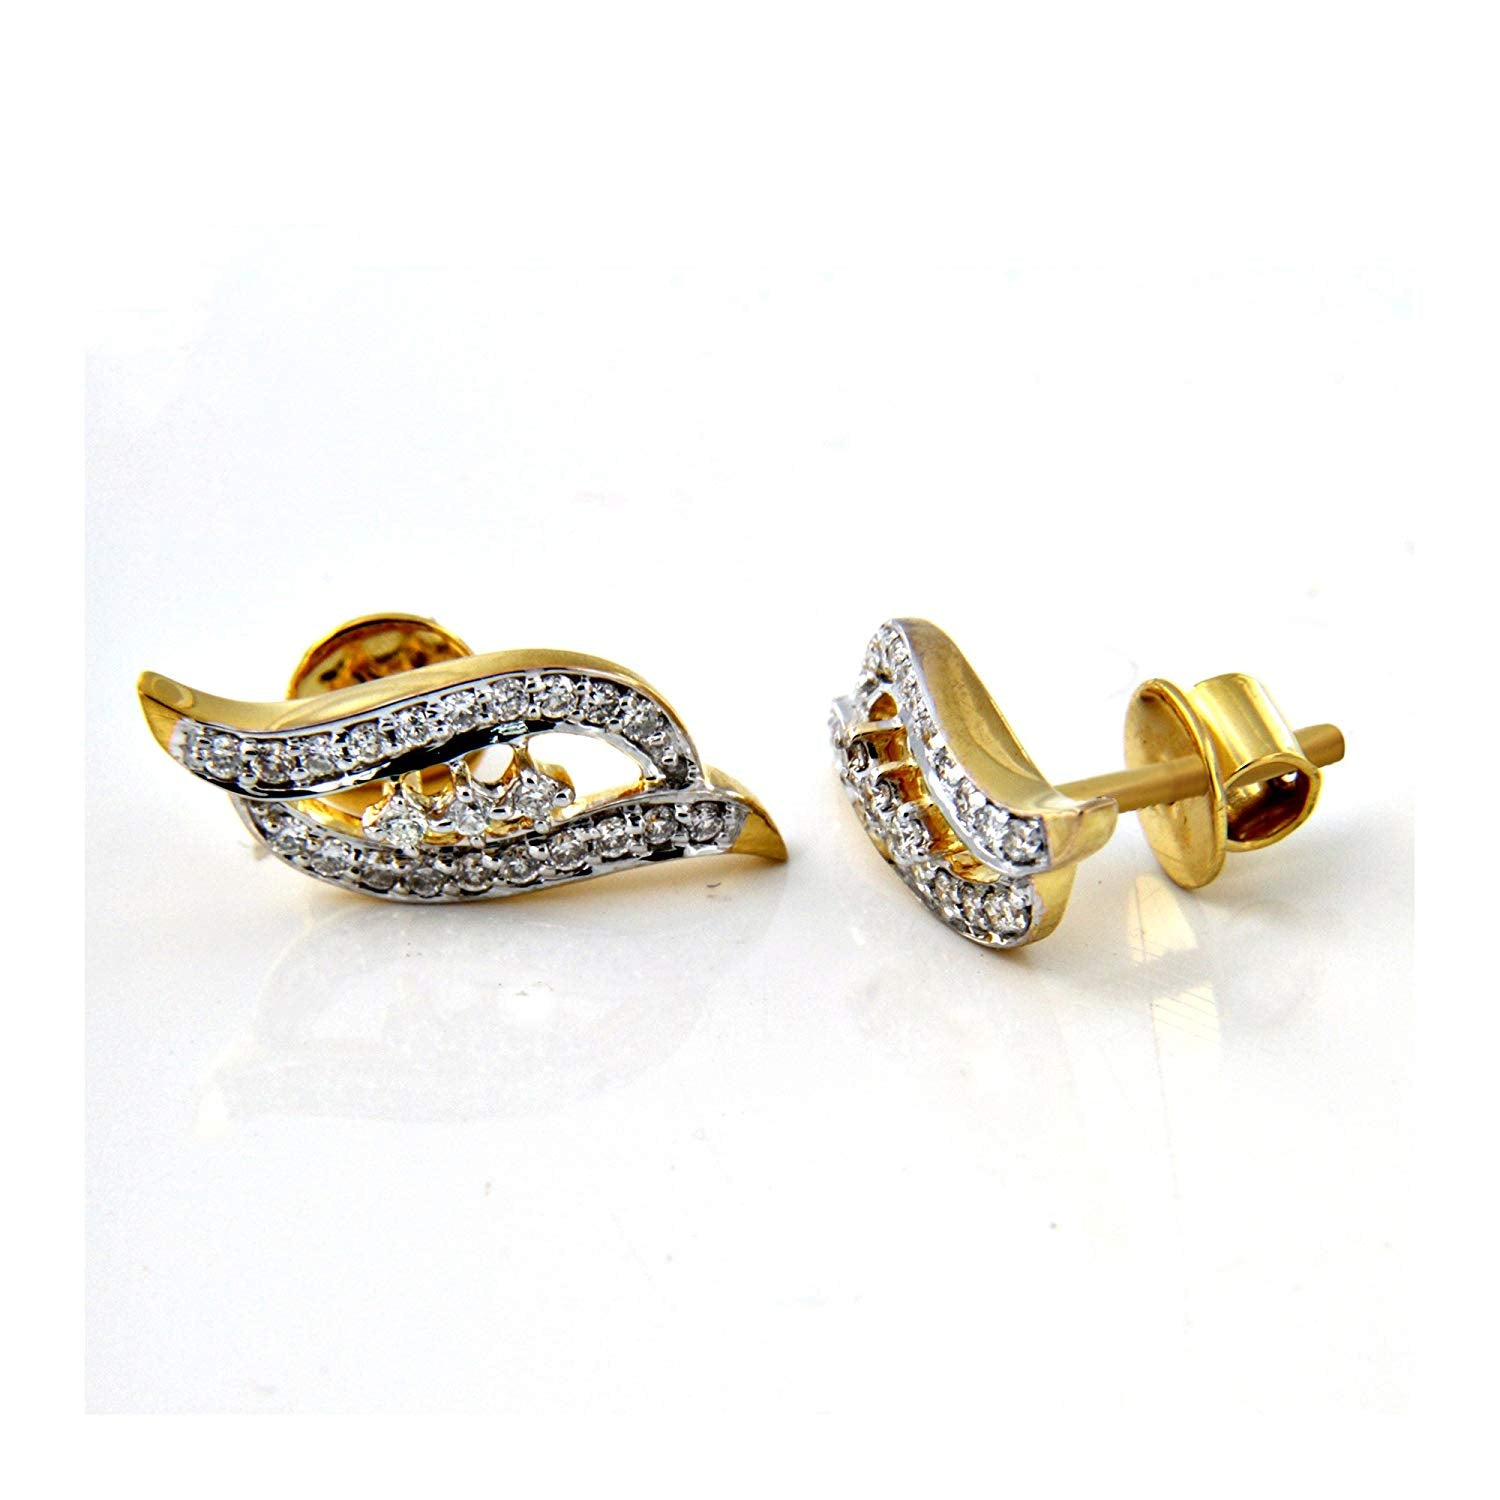 199e16b37 atjewels 18k Yellow Gold On 925 Silver Charming White Diamond Stud Earrings  MOTHER'S DAY SPECIAL OFFER